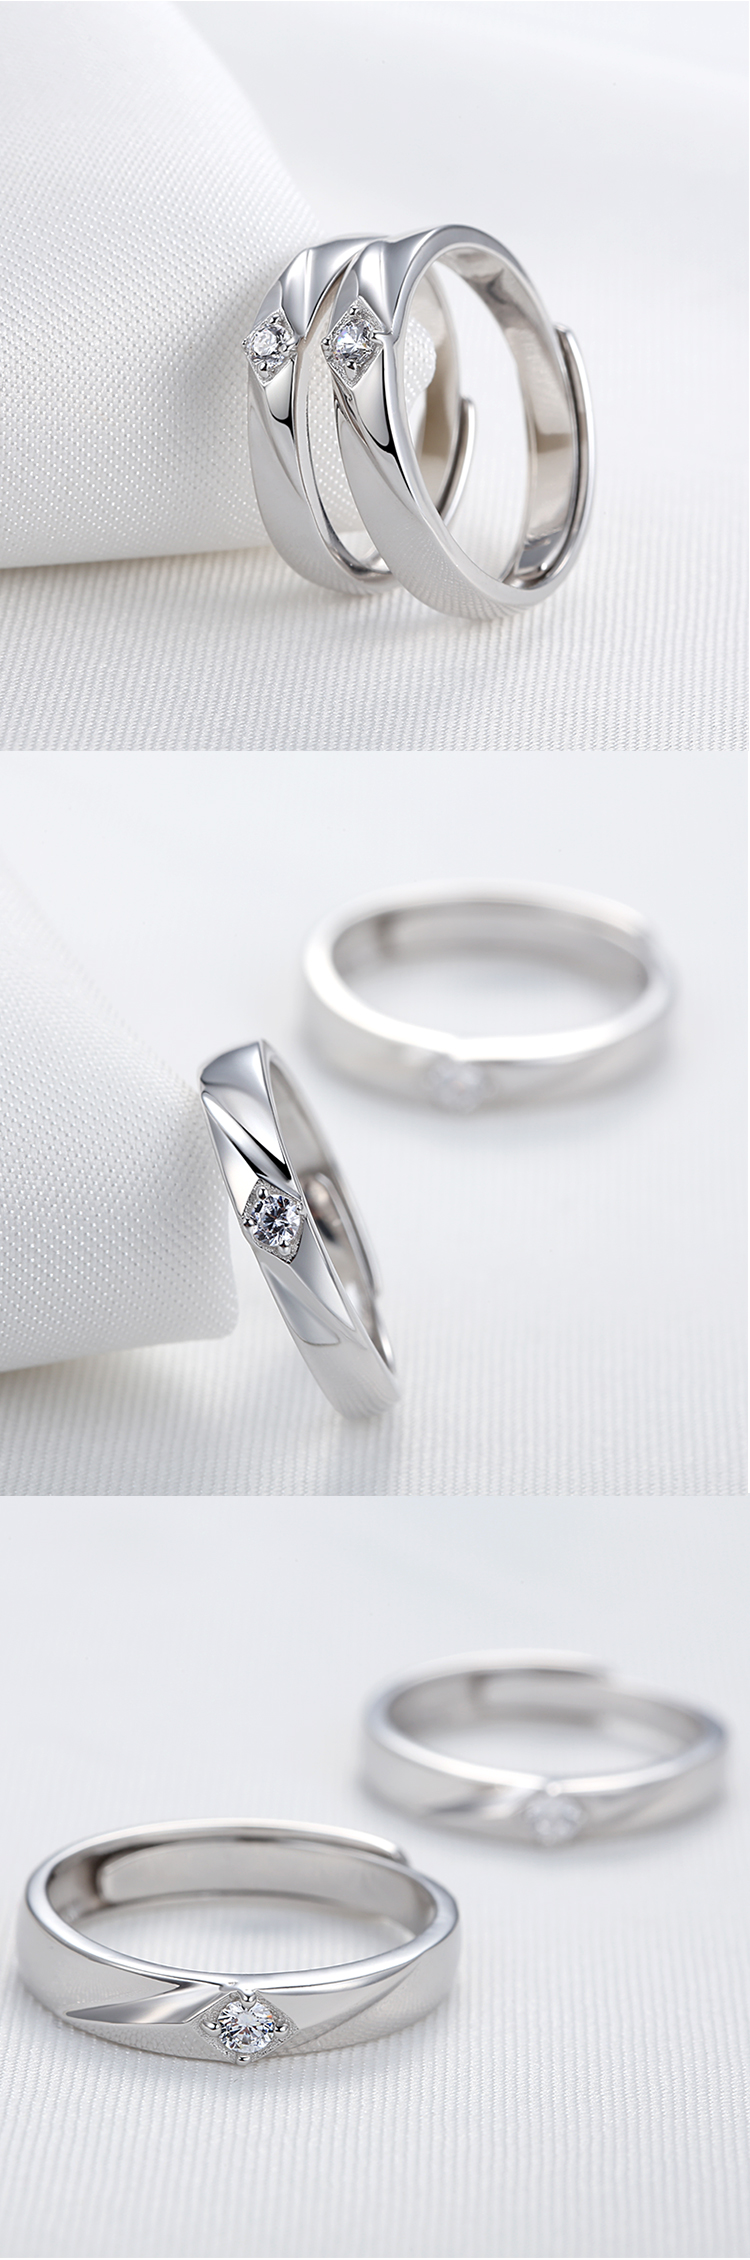 Latest Design Customized Couples Sterling Silver Zircon Rings